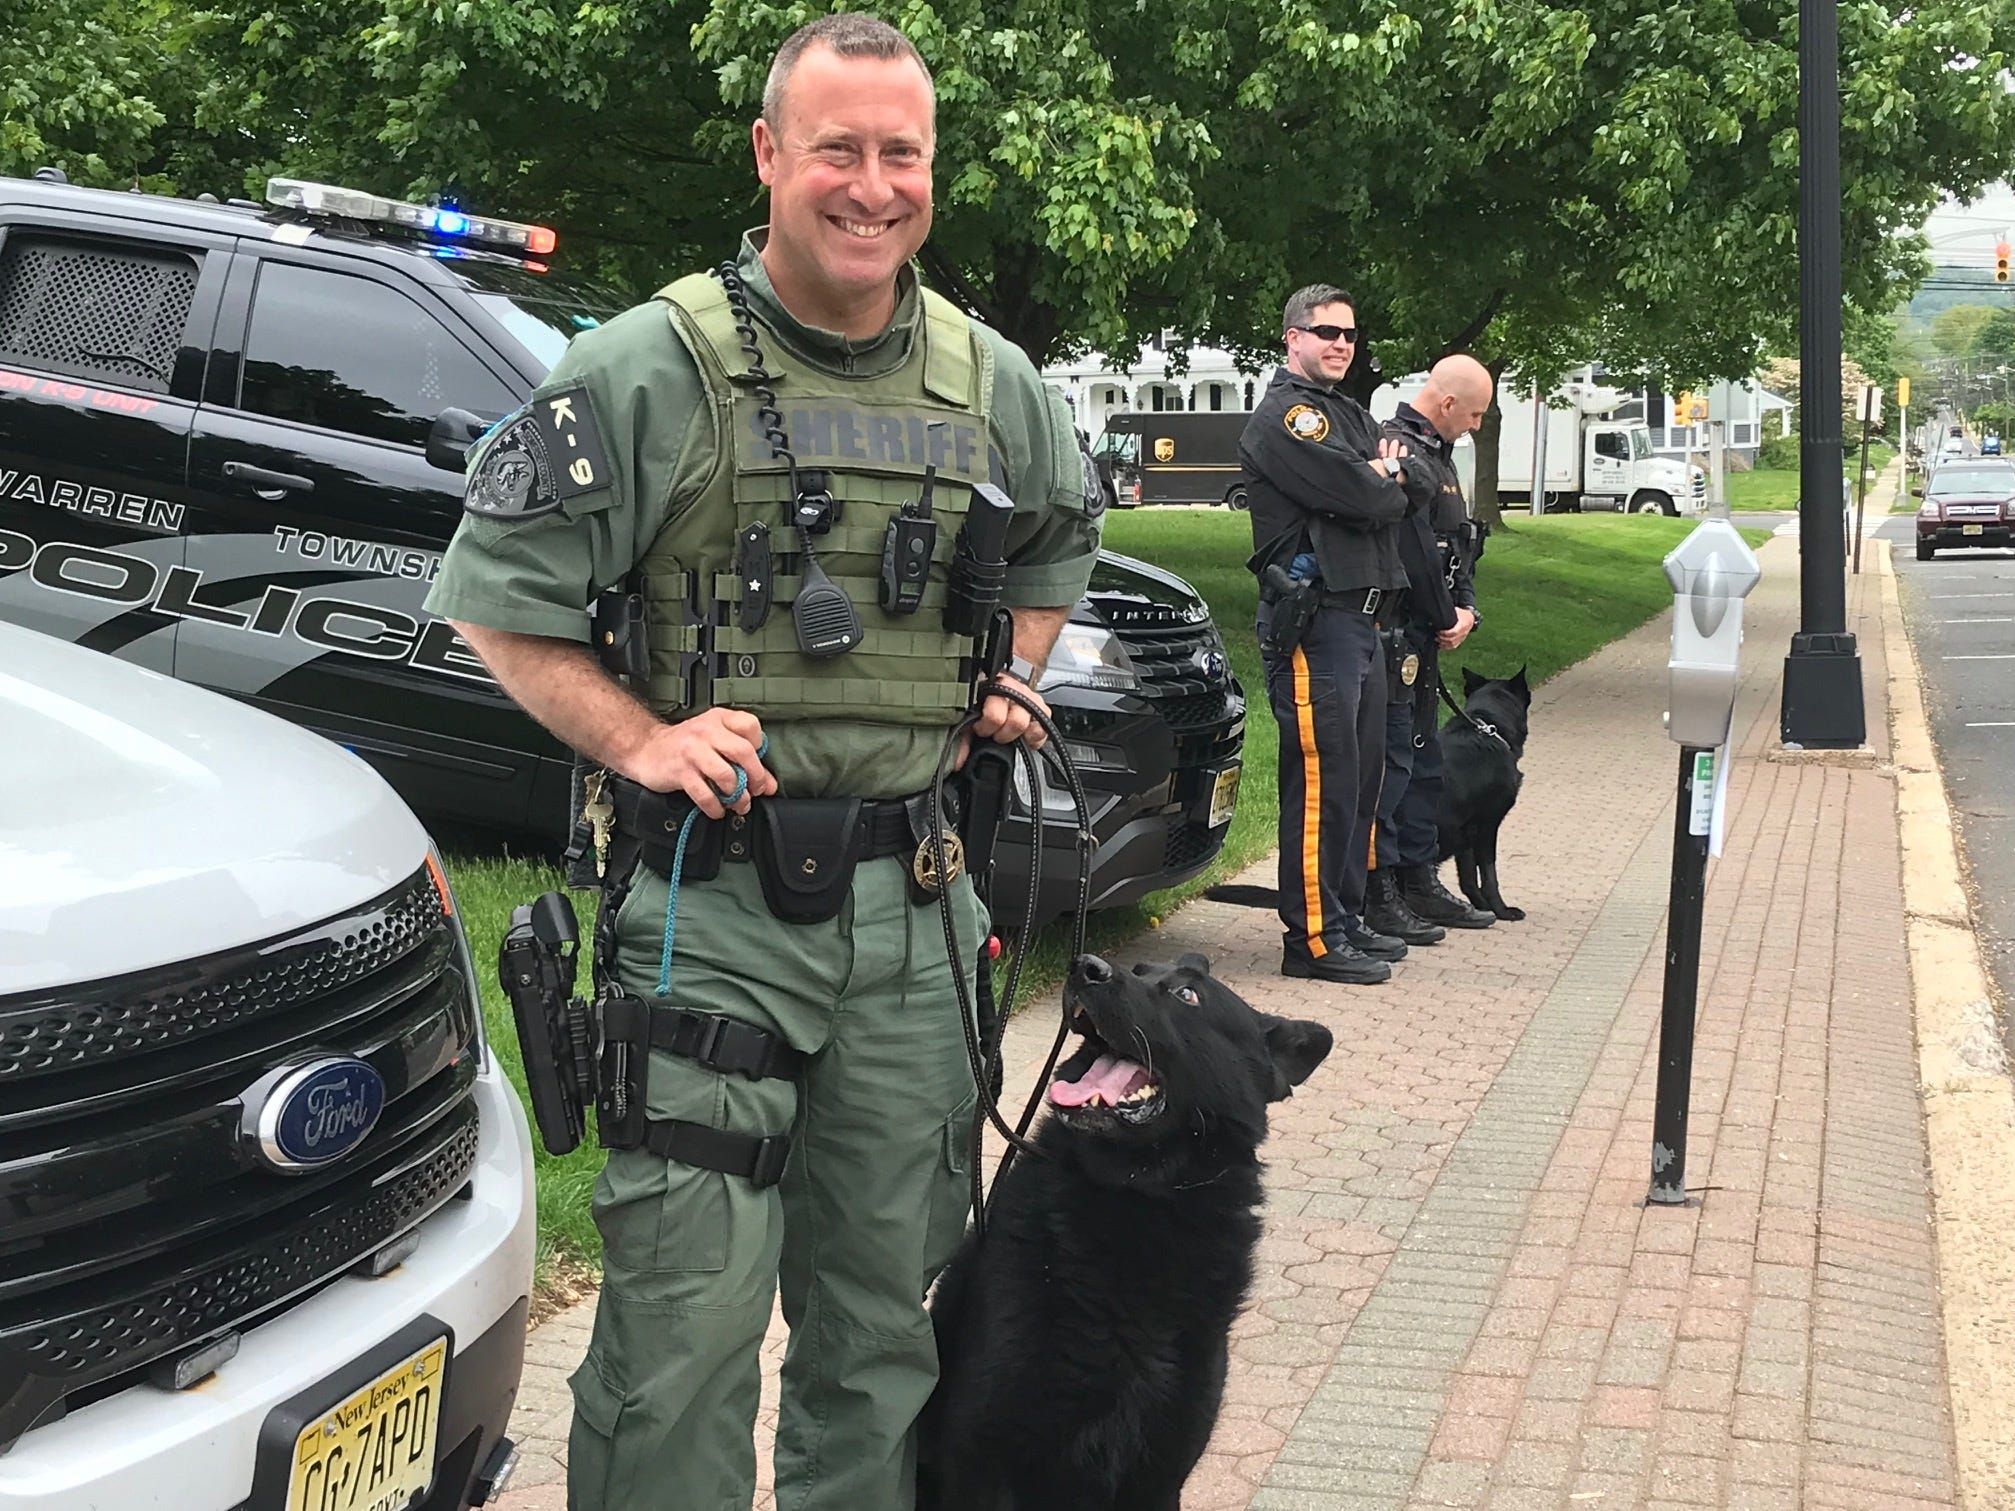 Somerset County Sheriff's Office David Daneker and his K-9 partner Apex awaiting the arrival of riders in the Police Unity Tour in Somerville.